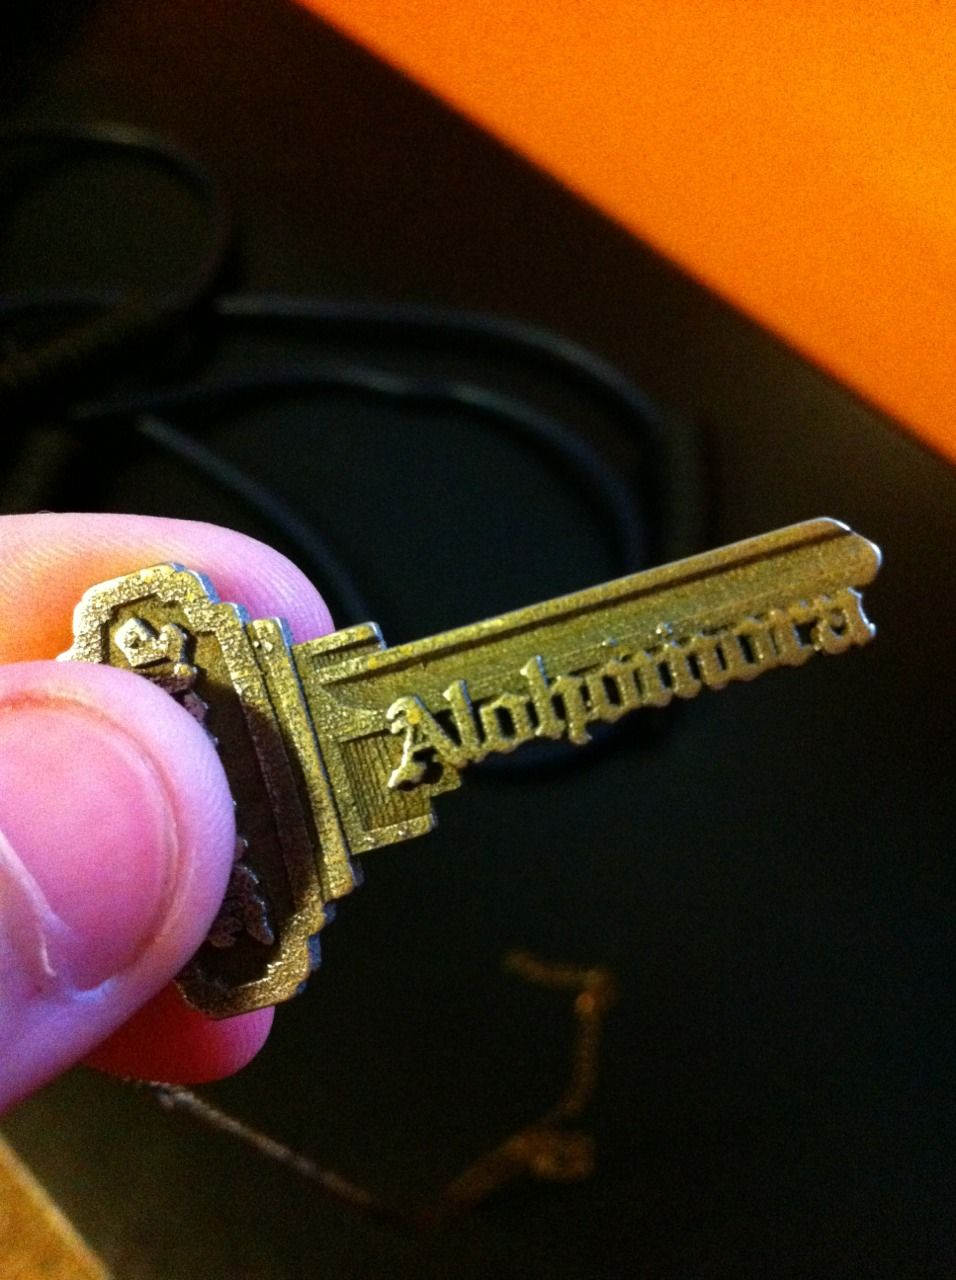 Fearful_Symmetry requested this customized Alohomora 3D printed key (by Shapeways).  http://sv.reddit.com/r/harrypotter/comments/1g3ob9/my_sisters_birthday_present_for_those_troublesome/